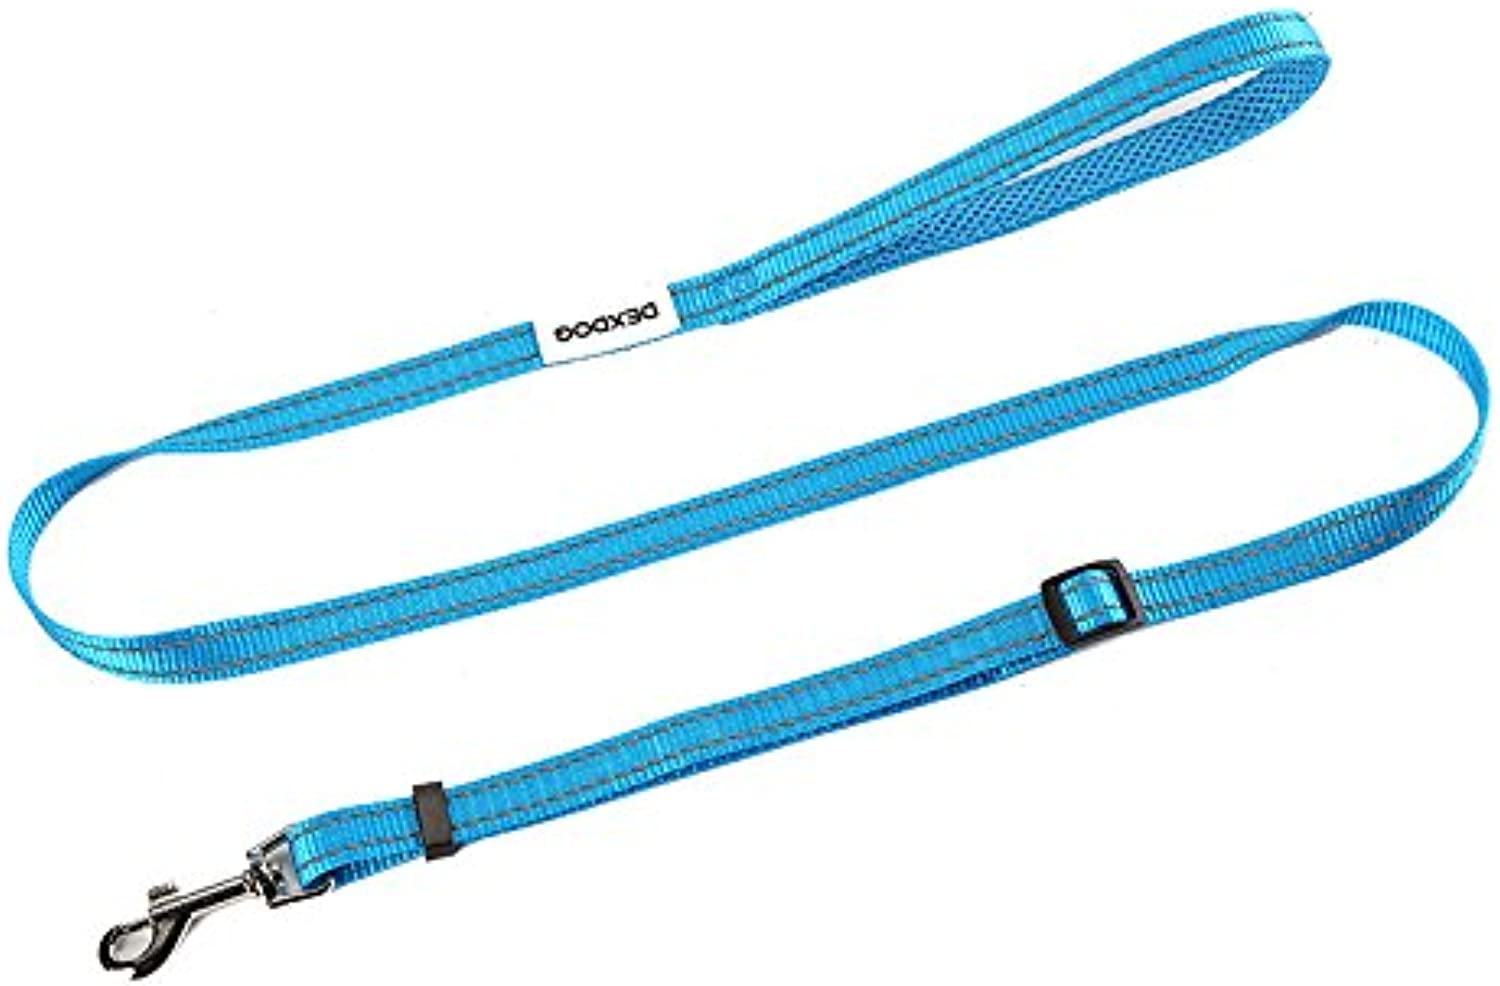 DEXDOG Adjustable Dog Leash by Padded Strong Short Walking Leash for Dogs, Puppy Leash, Pet Leash  Puppy Supplies & Dog Accessories for Large Medium Dogs (bluee, 5 8 inch Width)